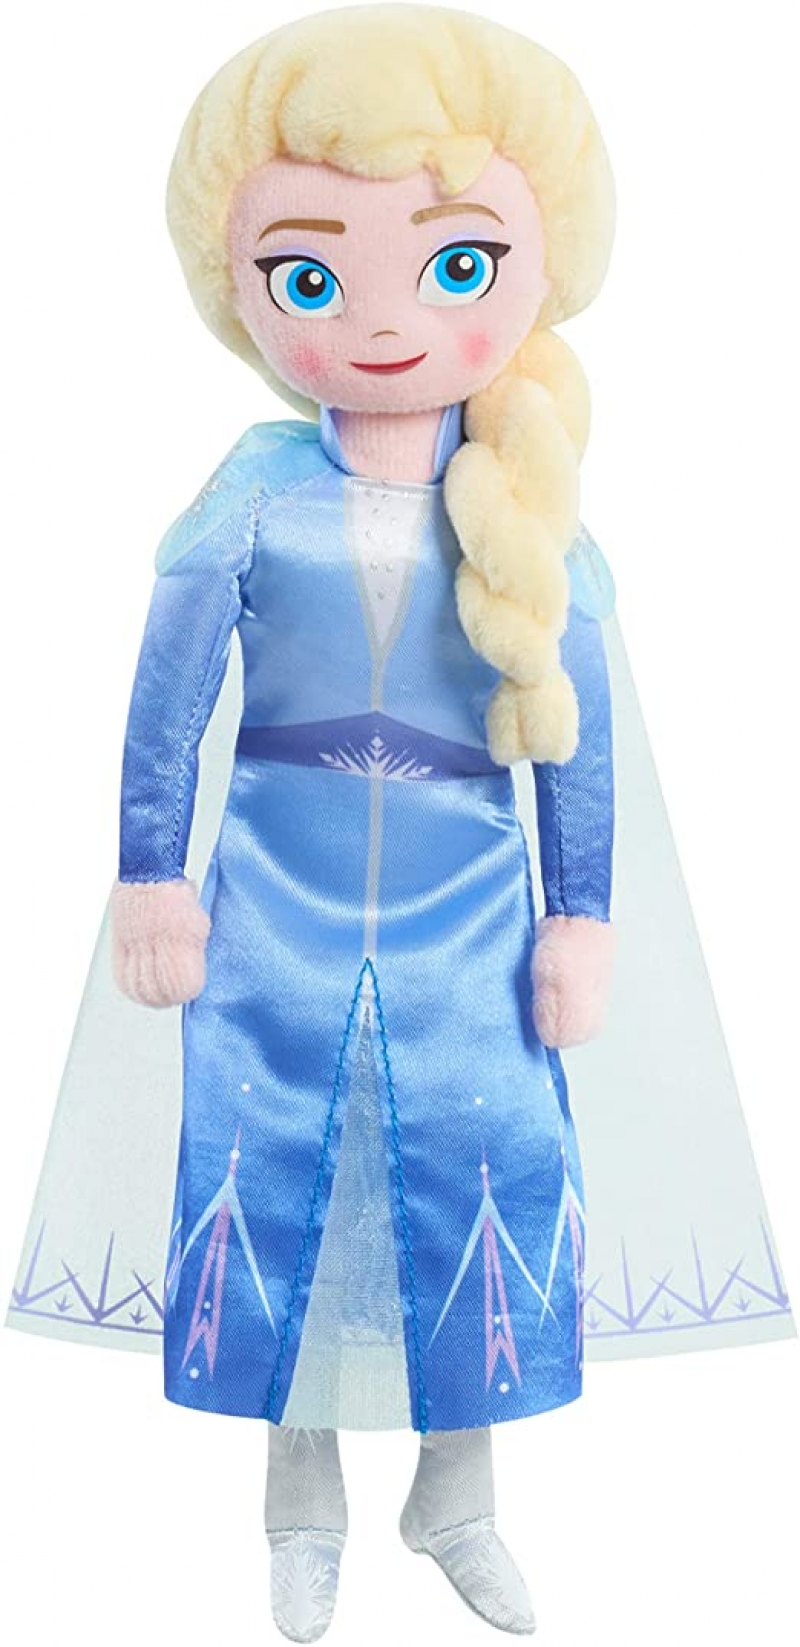 ihocon: Disney Frozen 2 Talking Small Plush Elsa 迪士尼冰雪奇緣 發聲娃娃